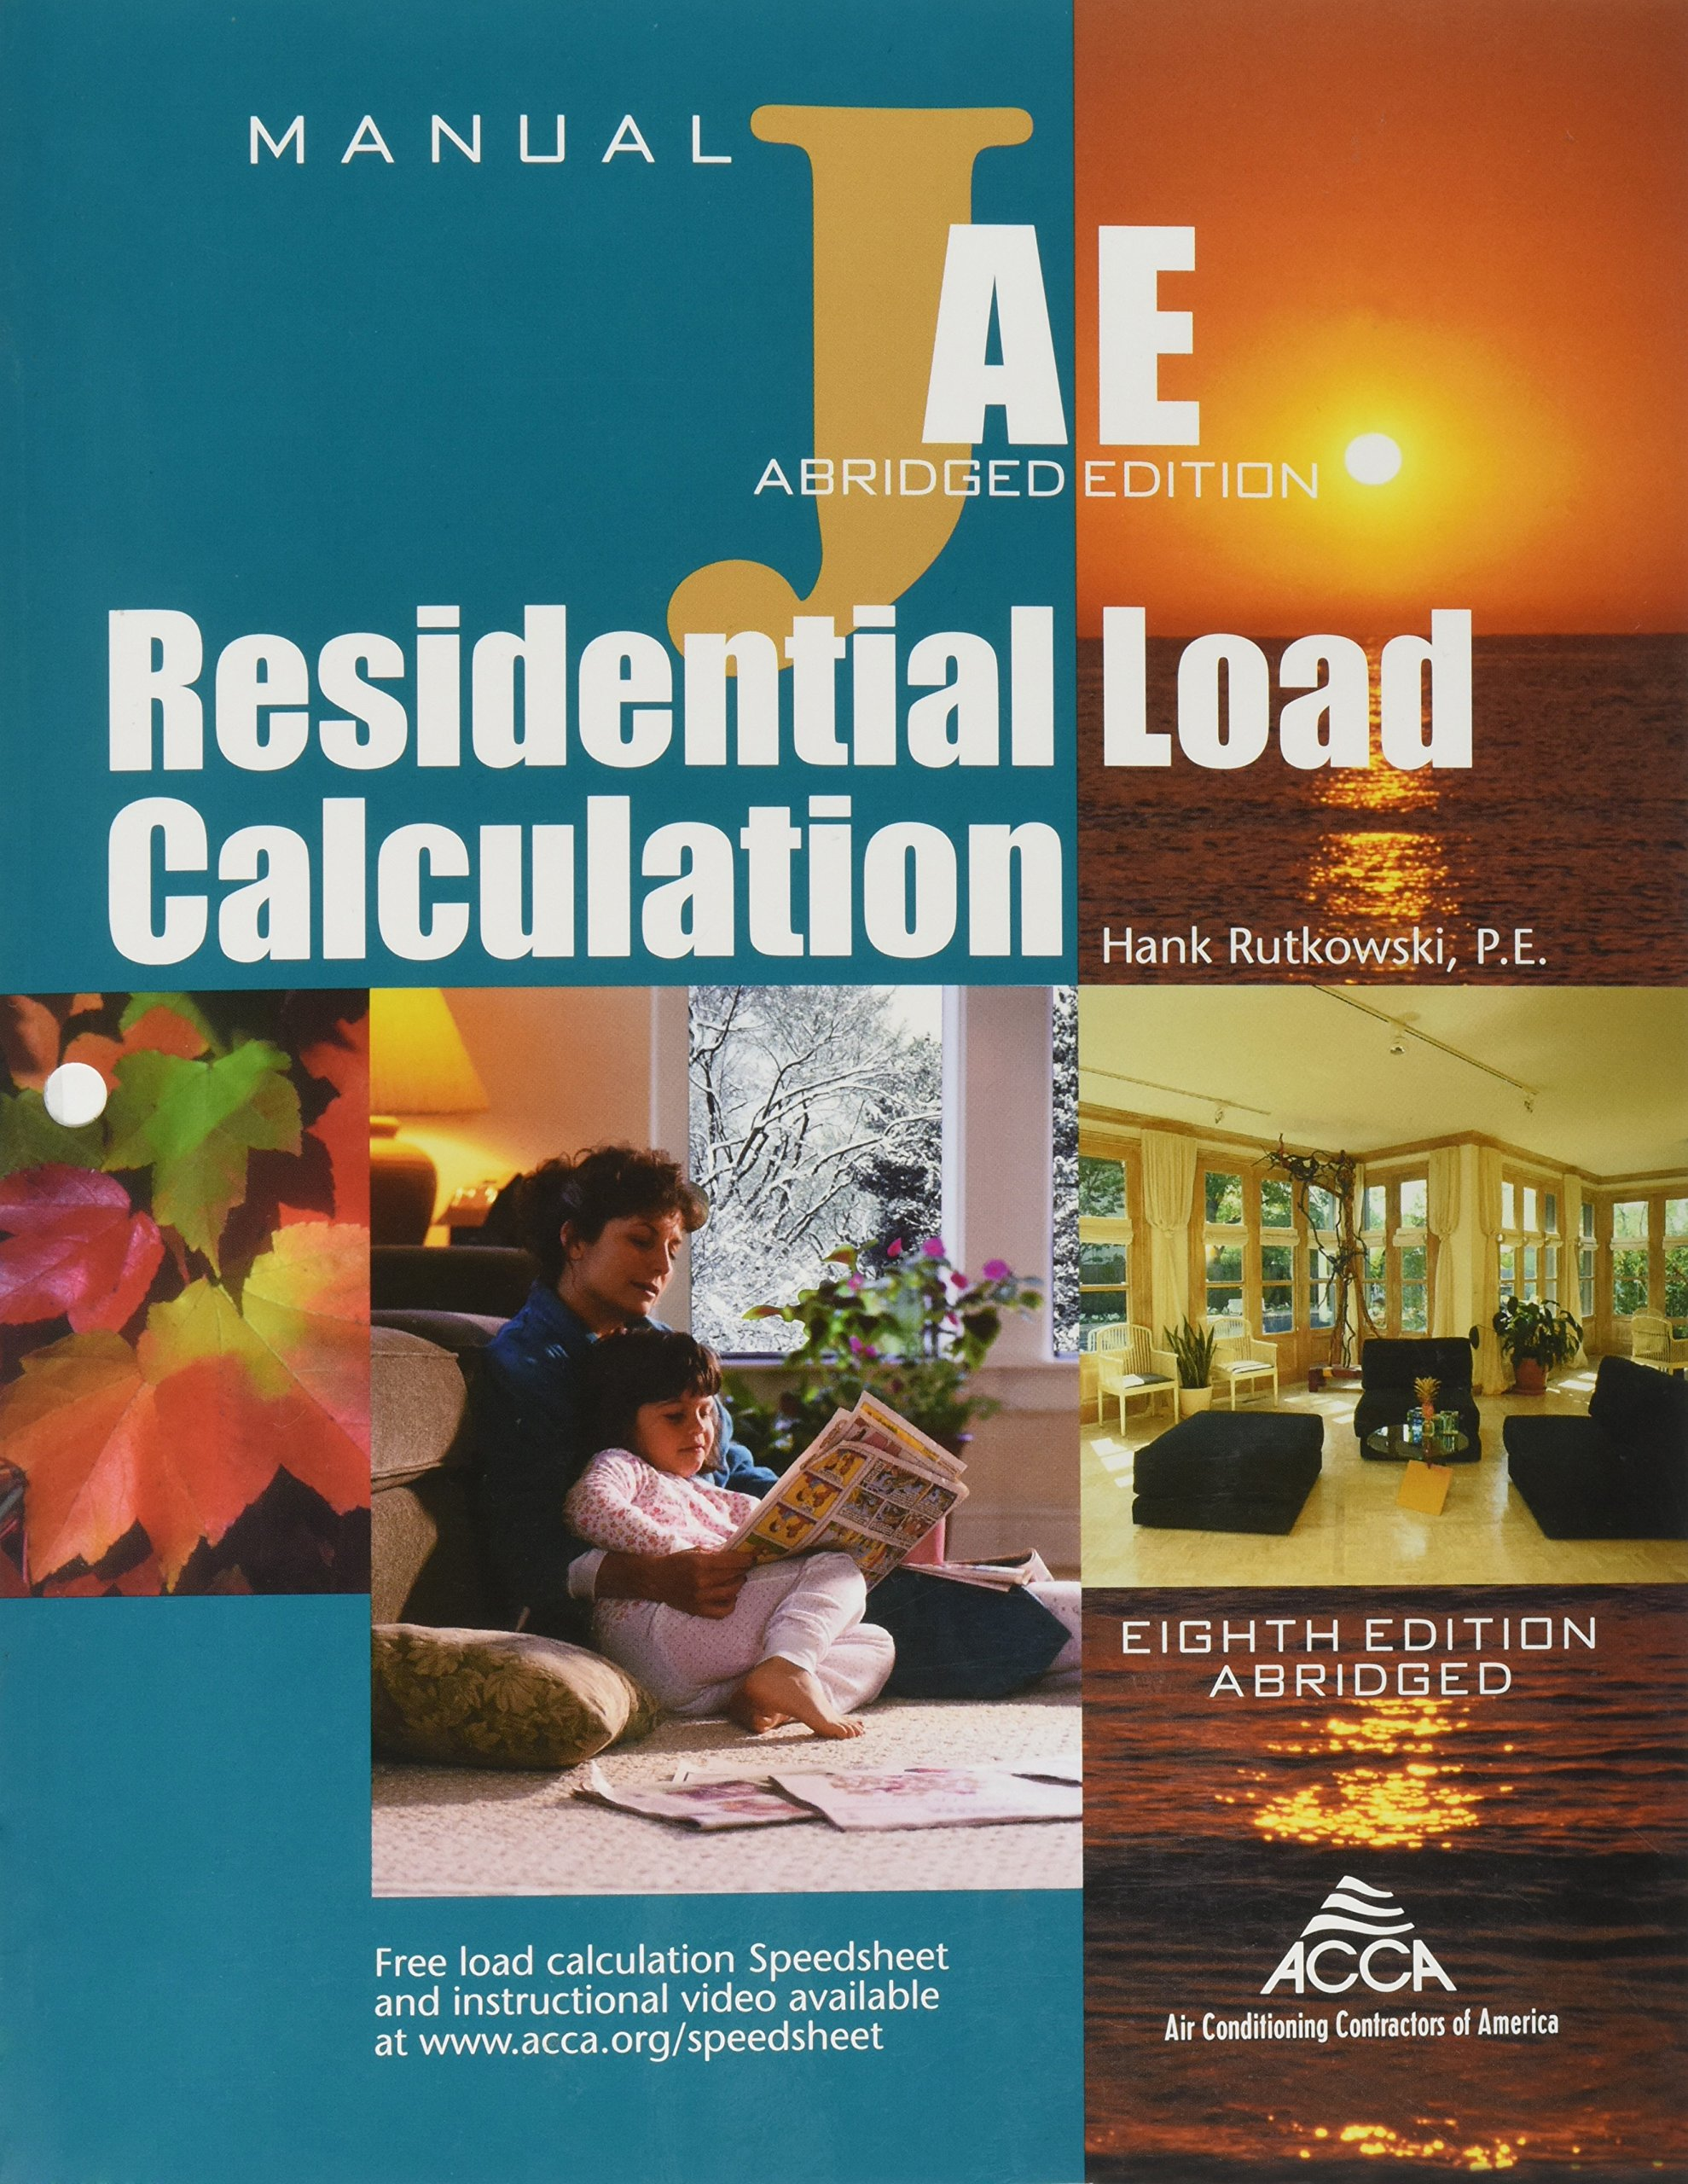 Residential Load Calculation Manual: Hank Rutkowski: 9781892765284:  Amazon.com: Books